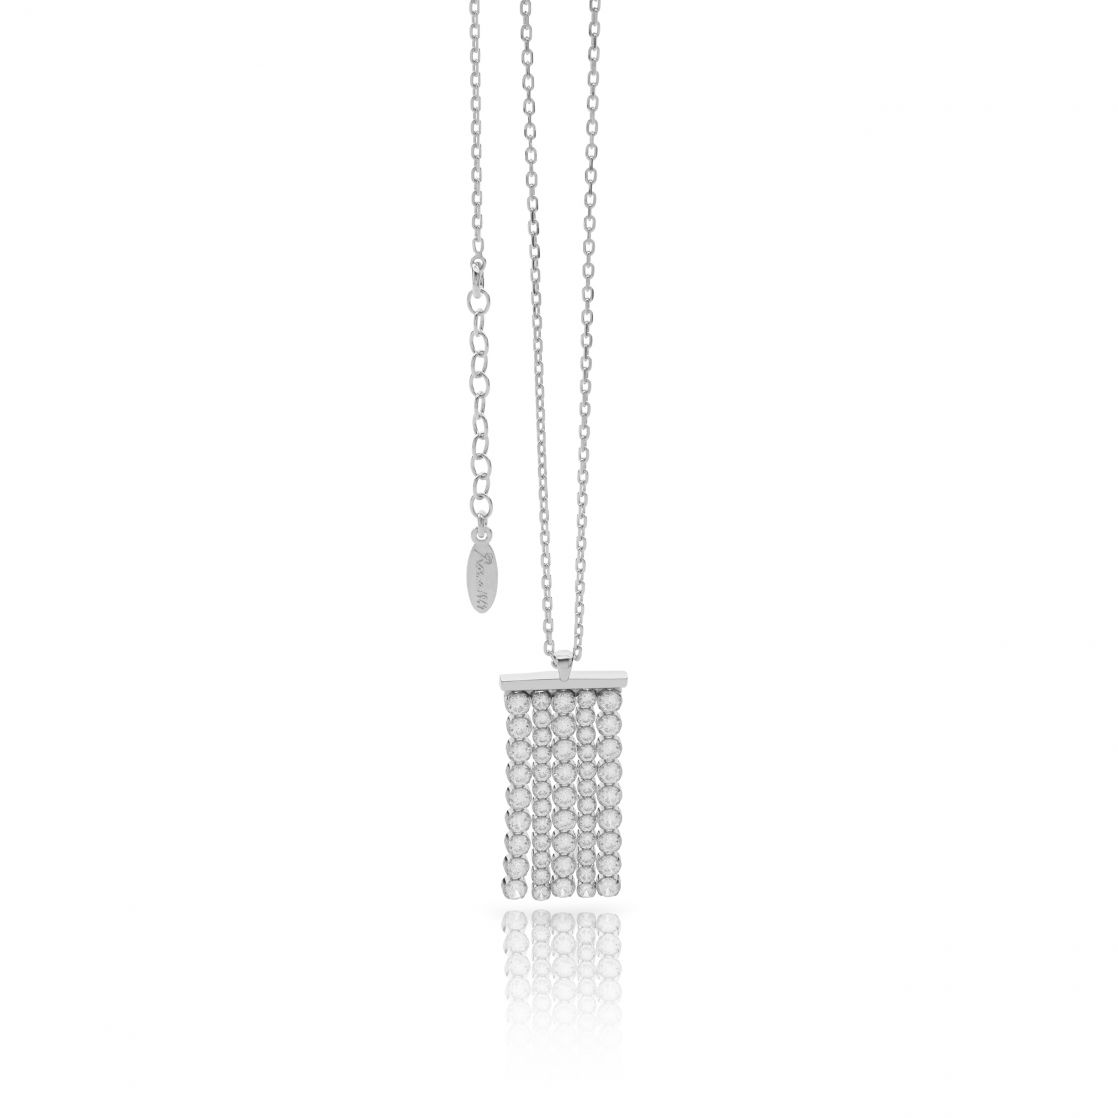 NECKLACE WITH WHITE CZ STRIPS